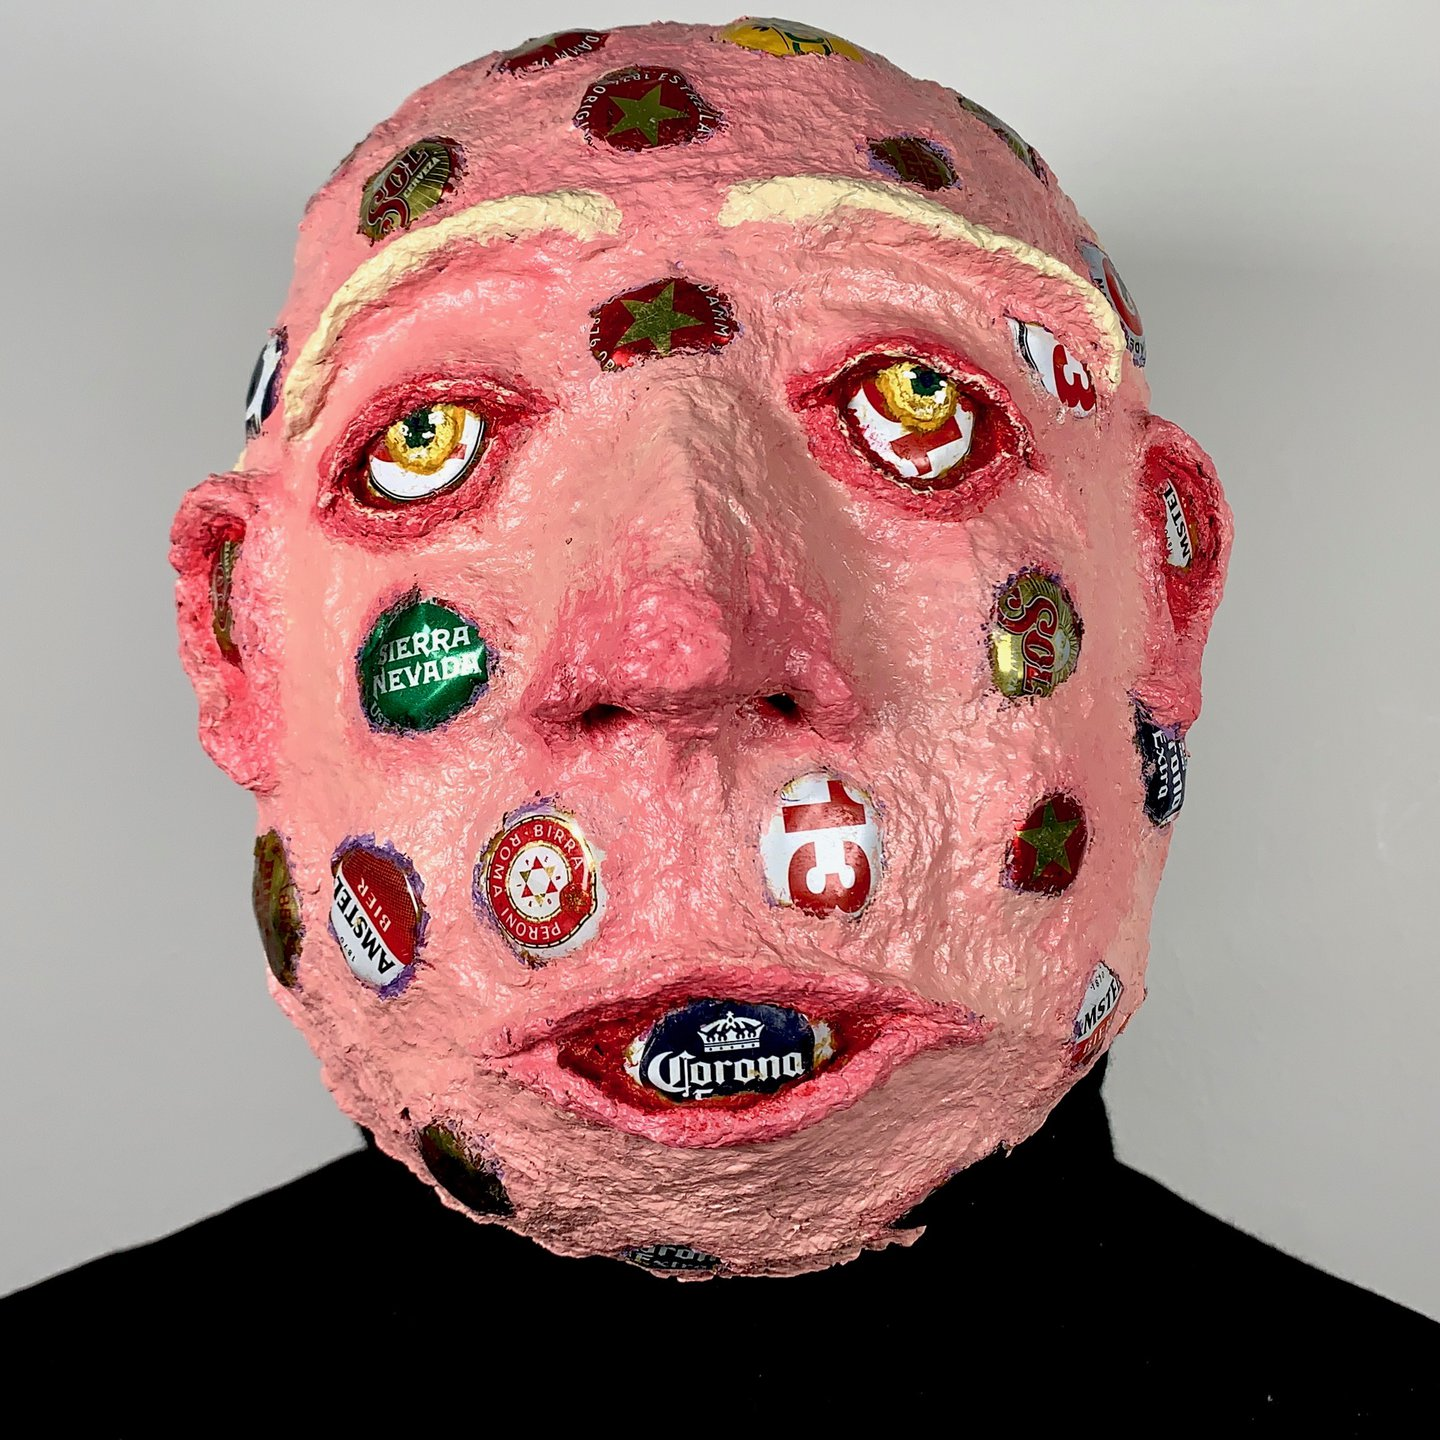 Throughout the entirety of 2020, Charlie Goodall committed to making a mask a day